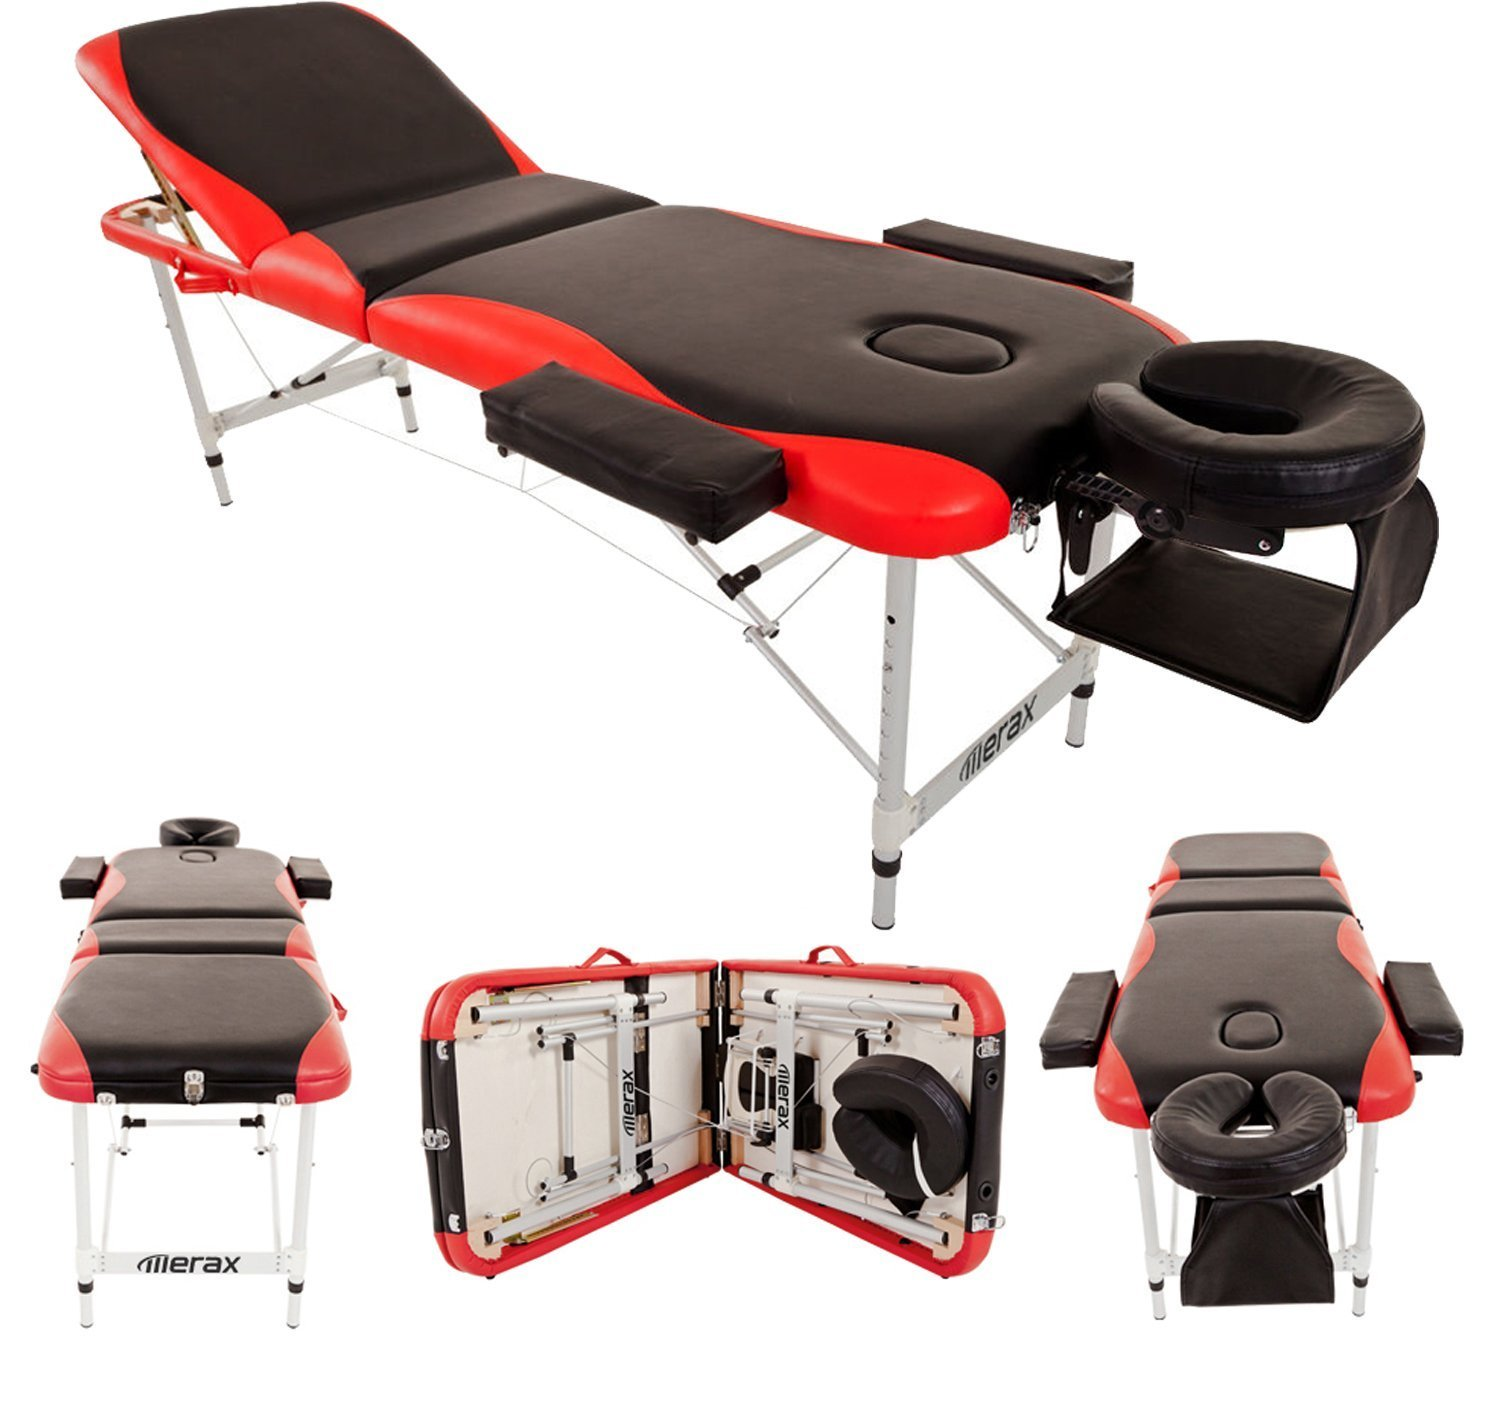 Best Portable Massage Table Reviews and Buying Guide 2018